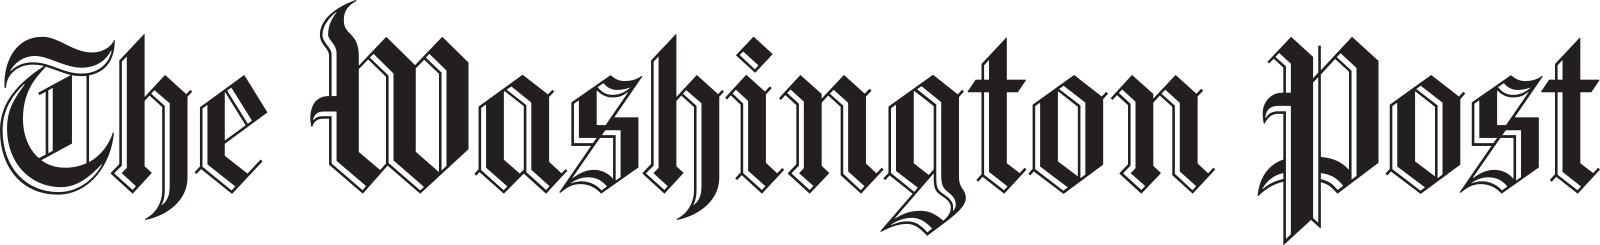 the-washington-post-logo-2